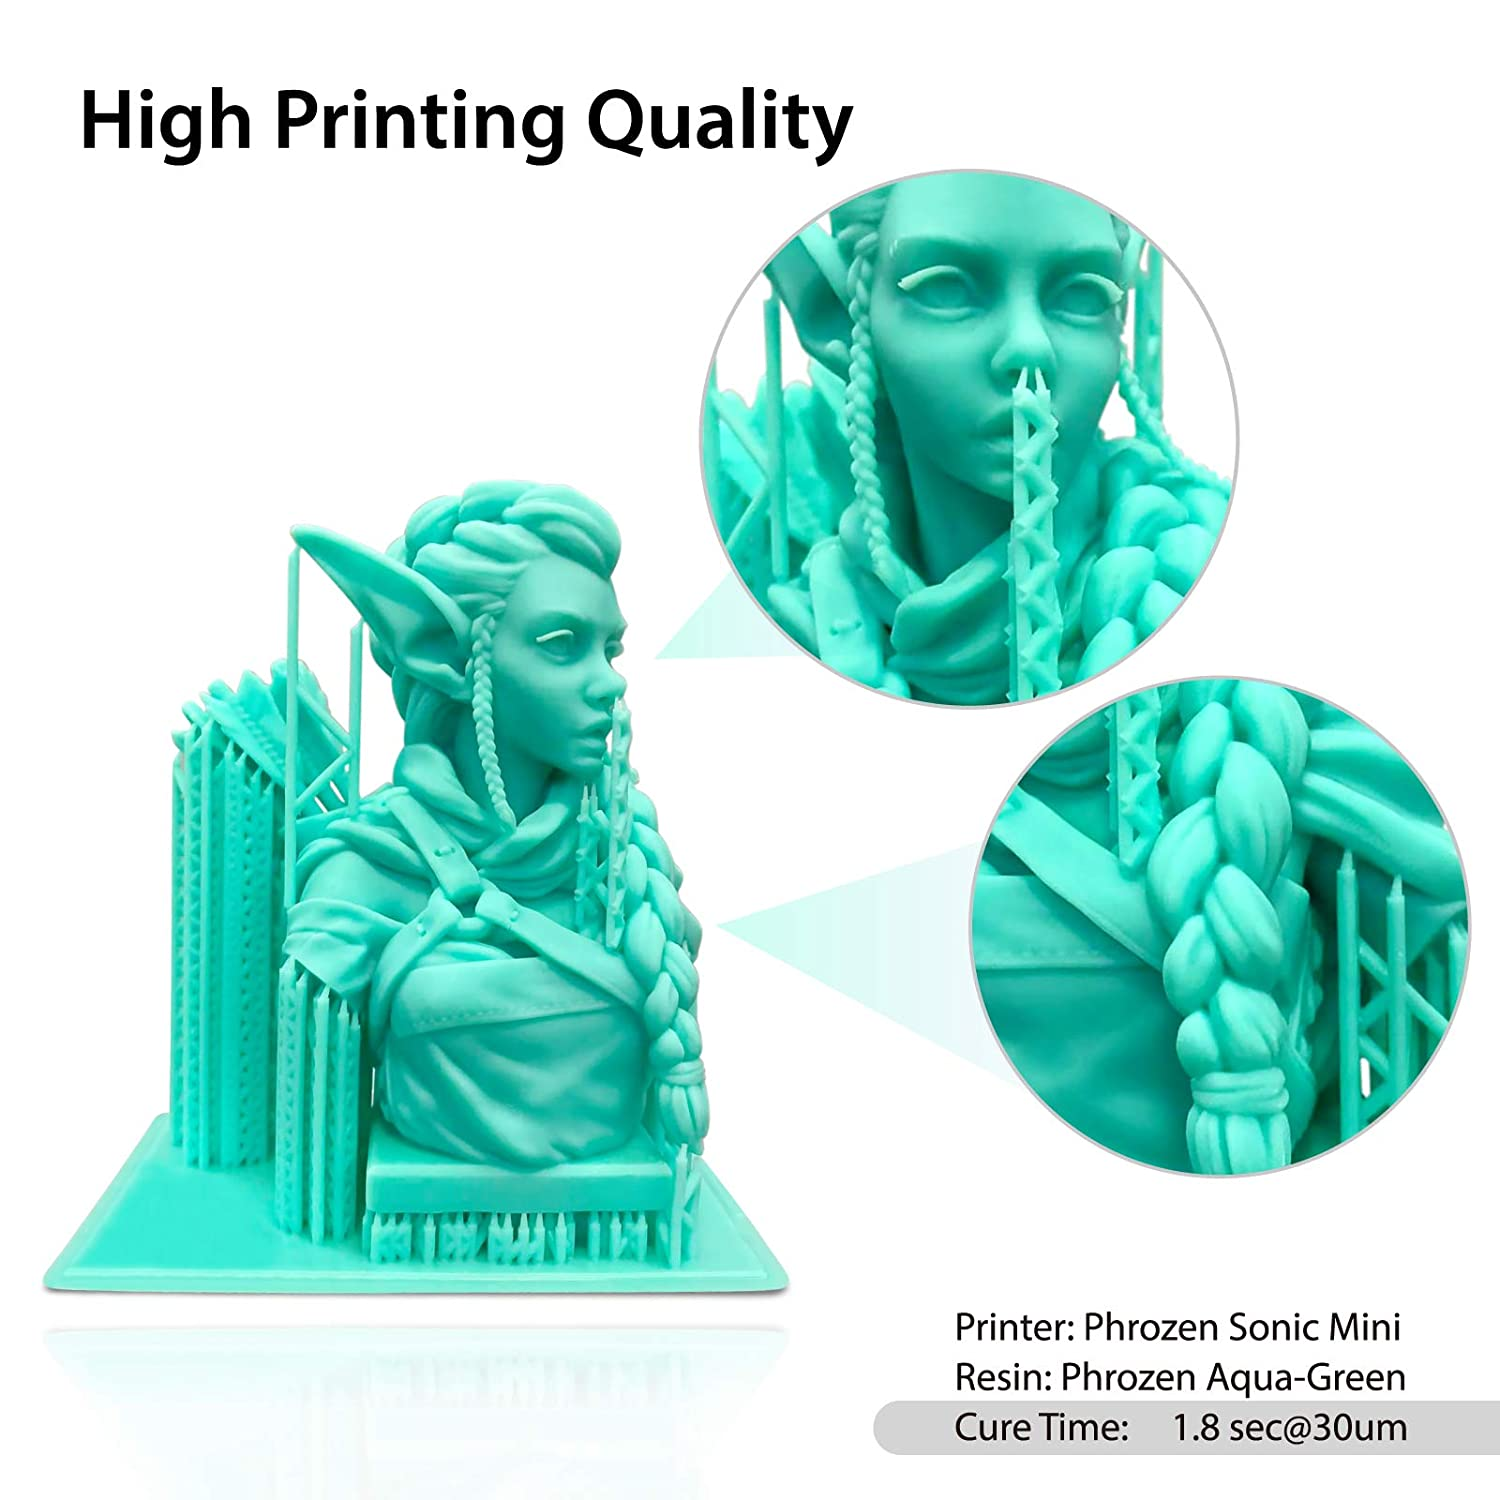 5.5 LCD Resin 3D Printer with easy-to-use interface touch screen,Parallel UV LED and Metal Vat,Printing Volume L4.7 x W2.6 x H5.1 in PHROZEN Sonic Mini